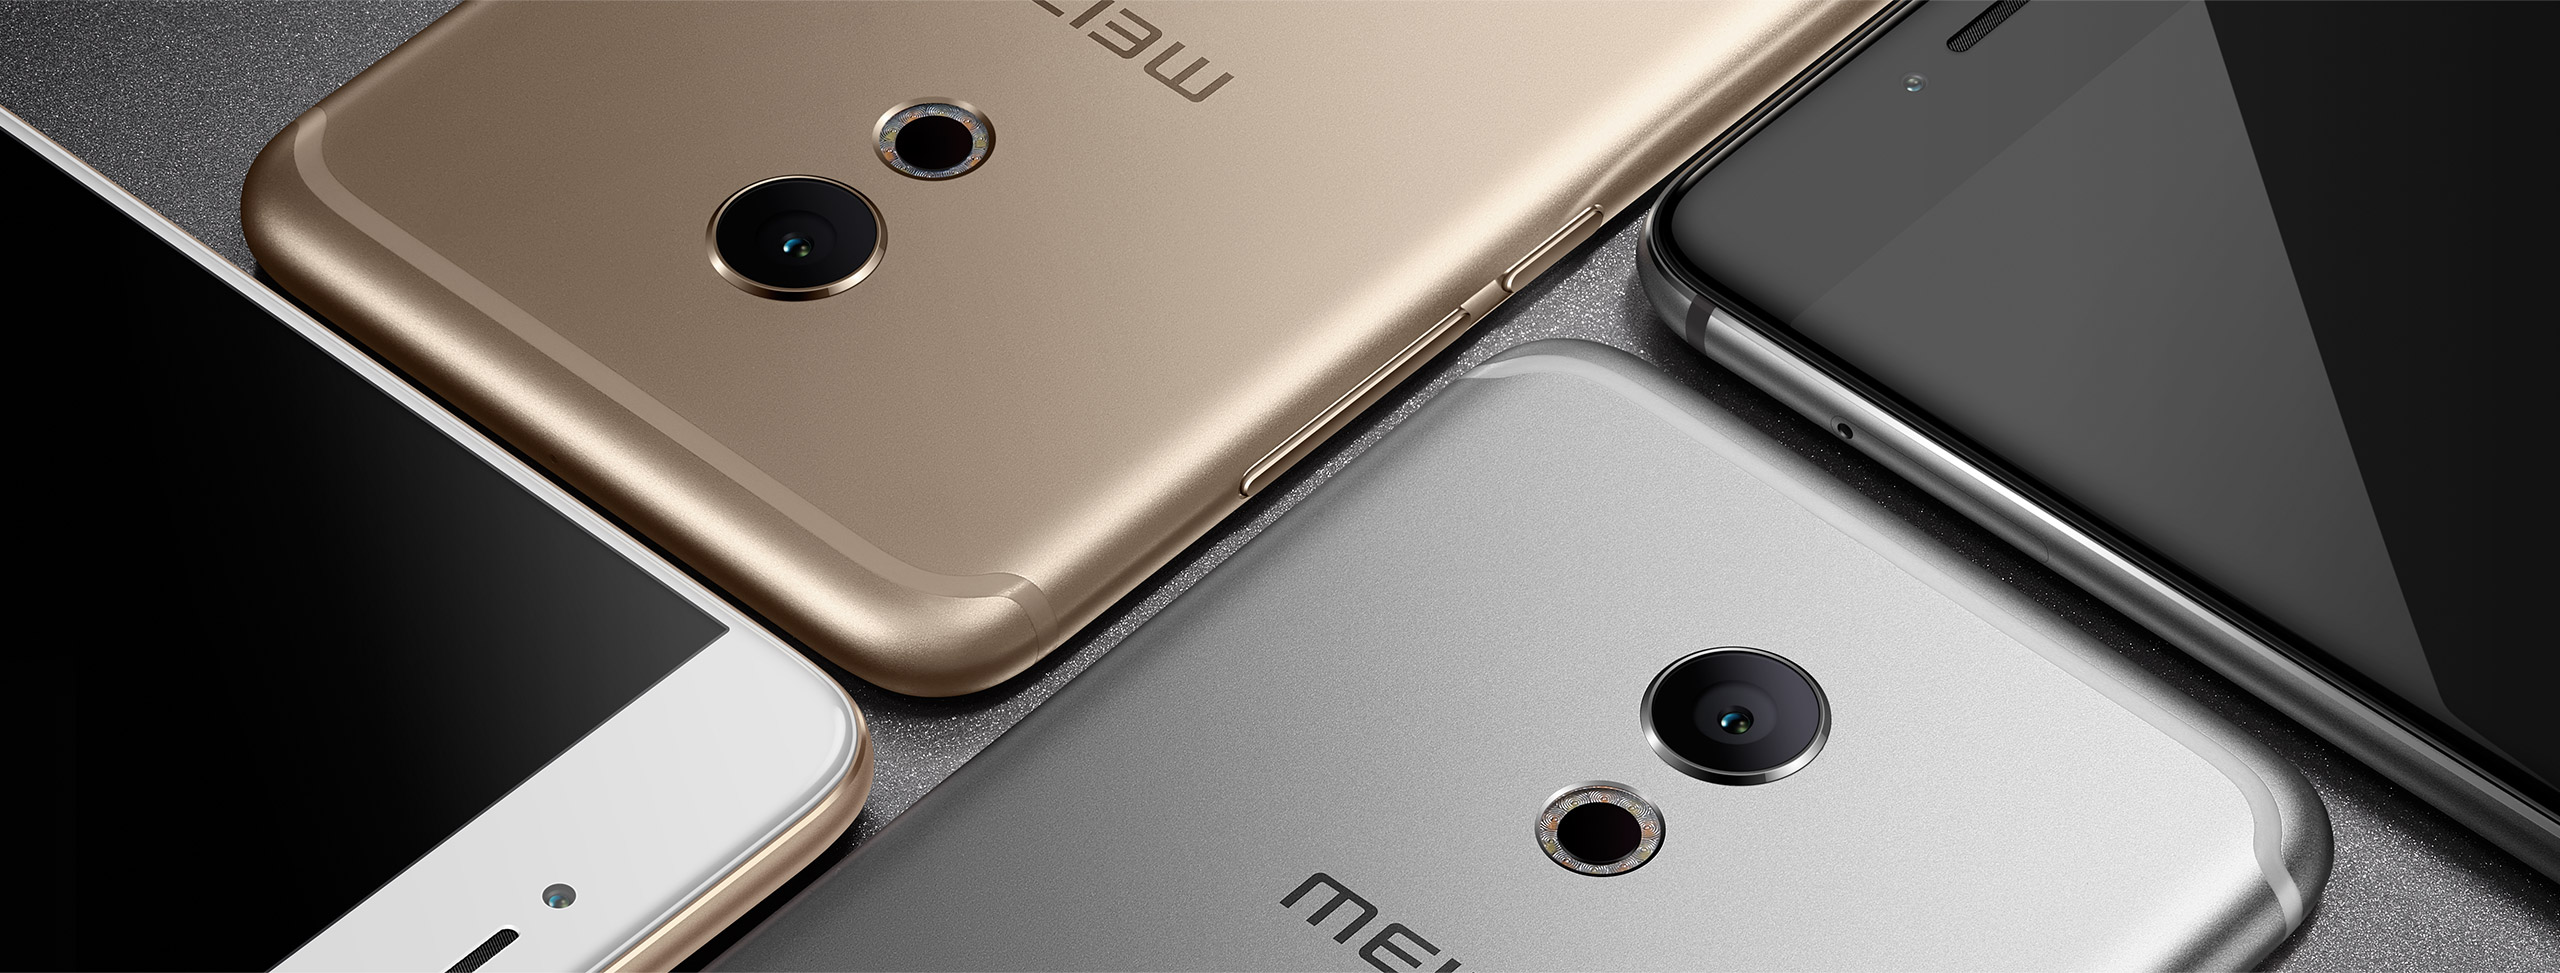 Meizu has announced an upgraded variant Pro6- Pro 6s